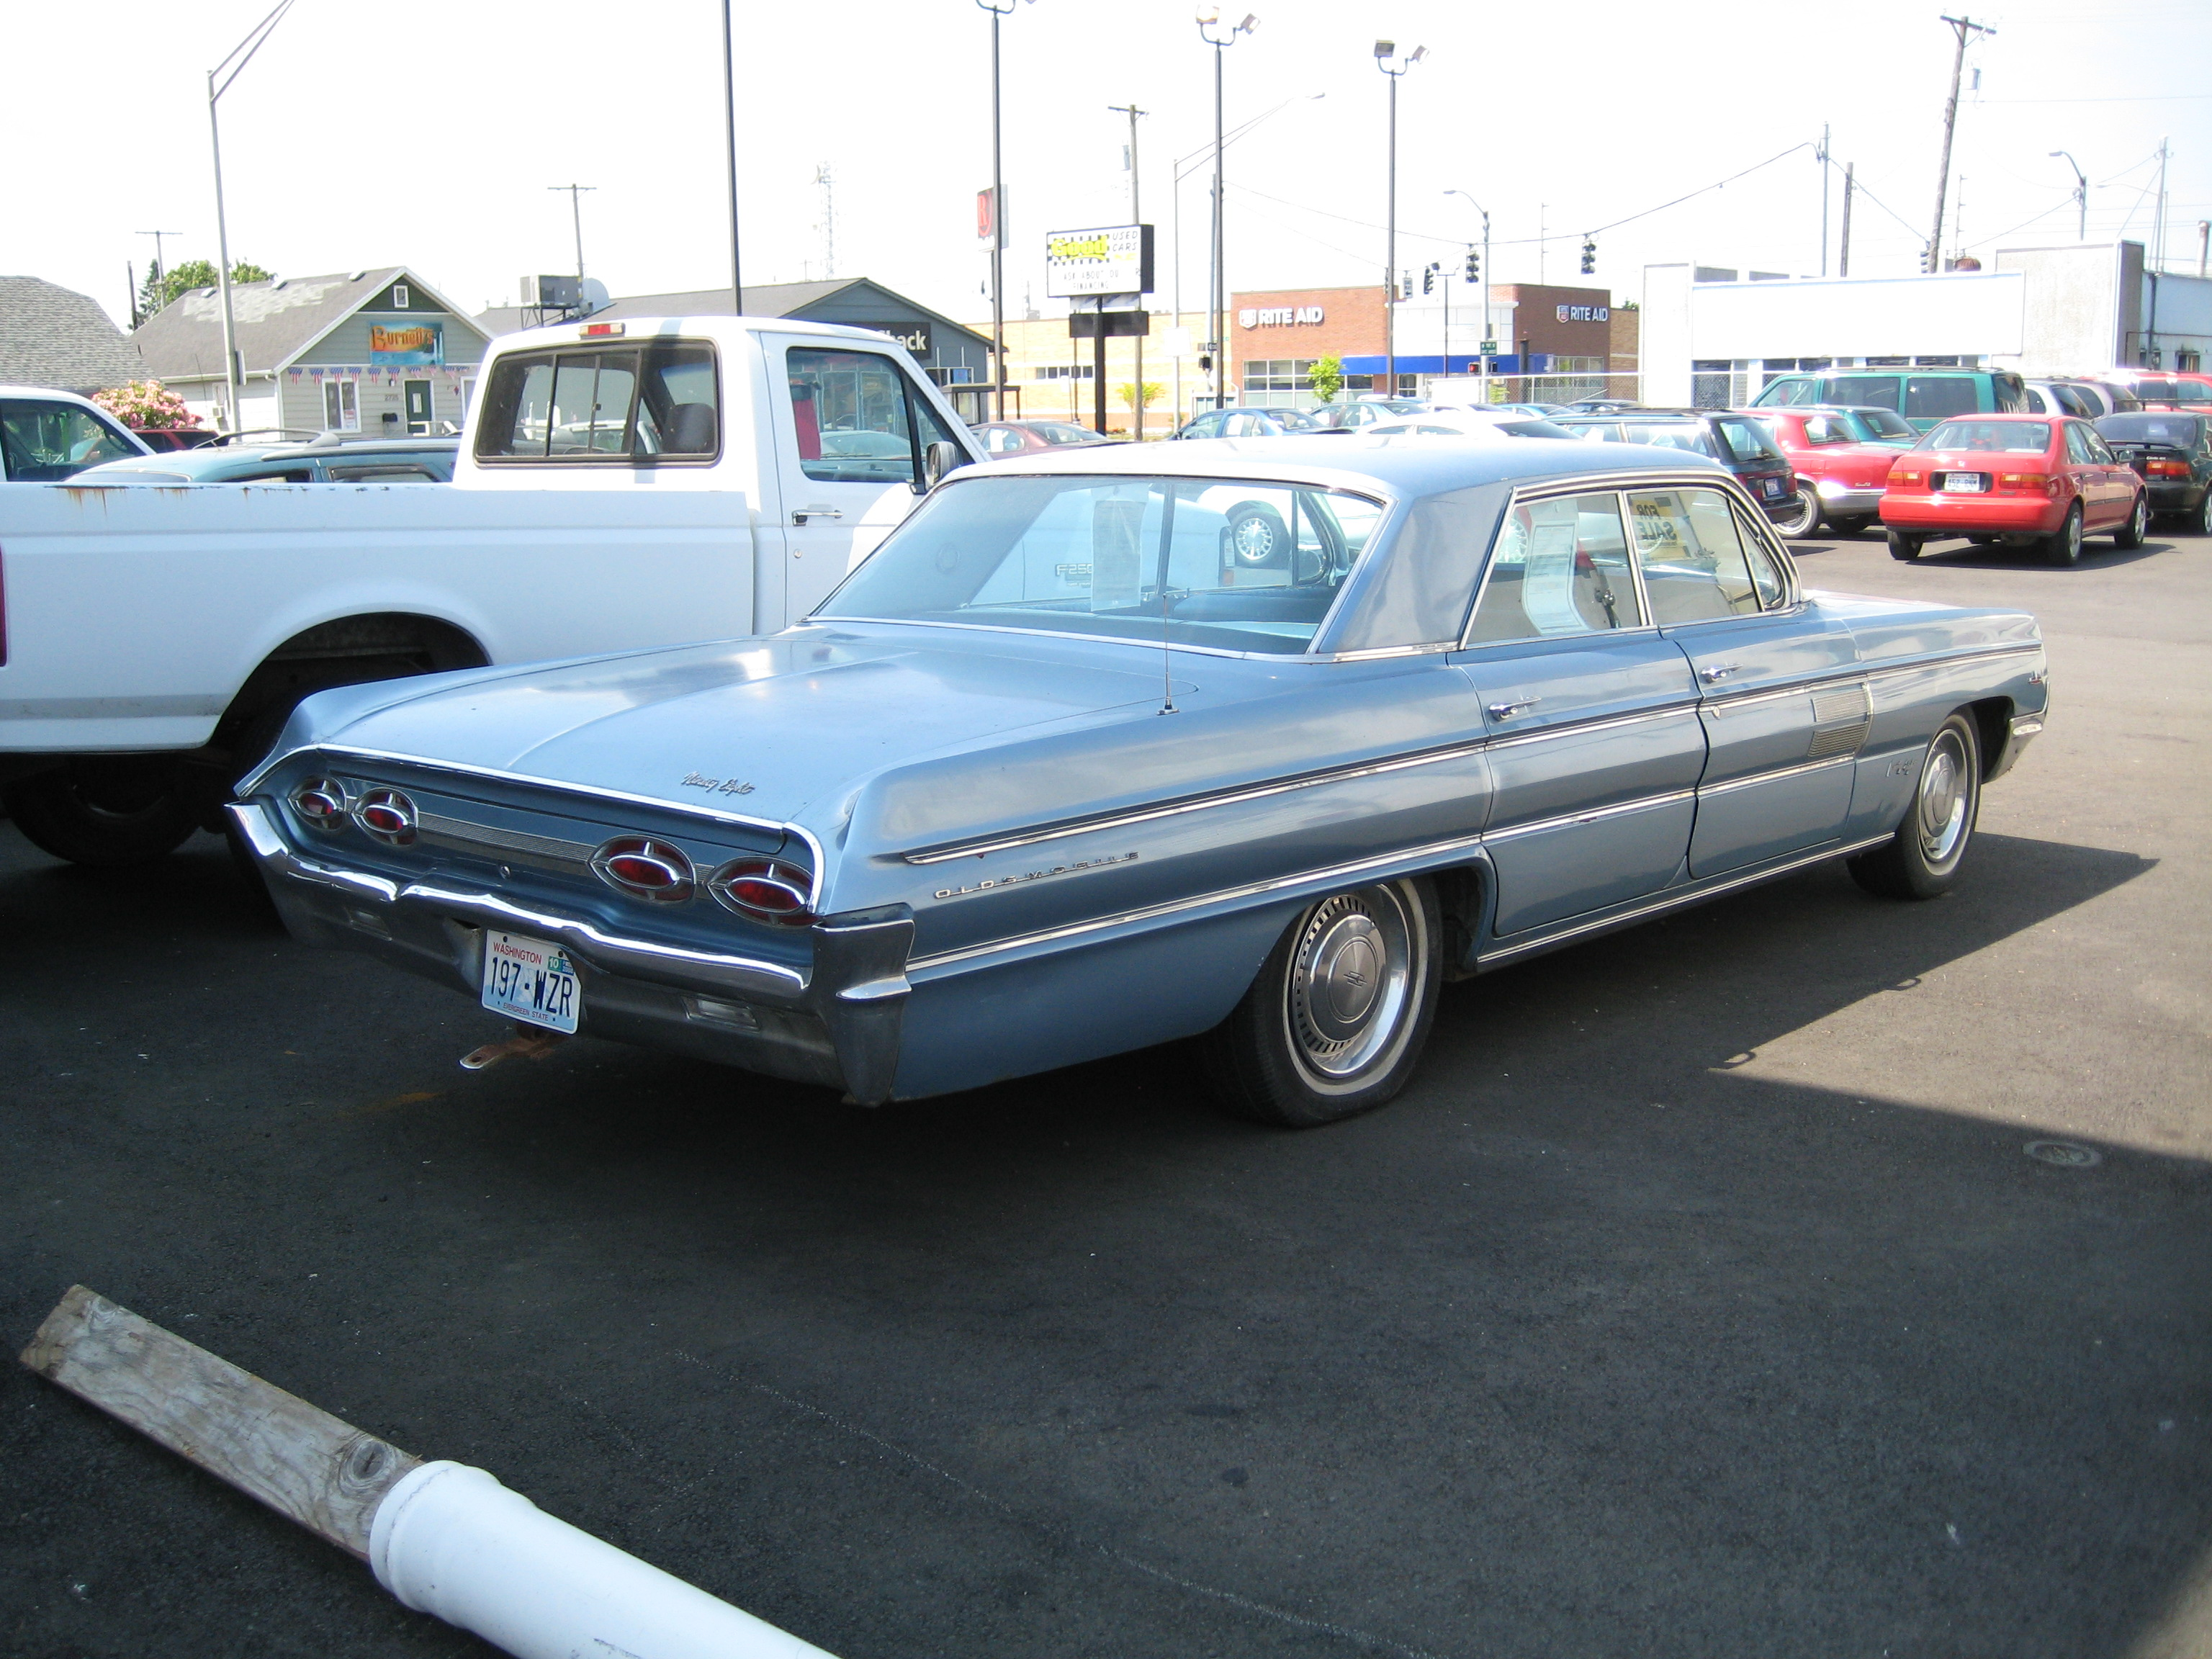 1962 Oldsmobile 98 Holiday Sports Sedan | Flickr - Photo Sharing!